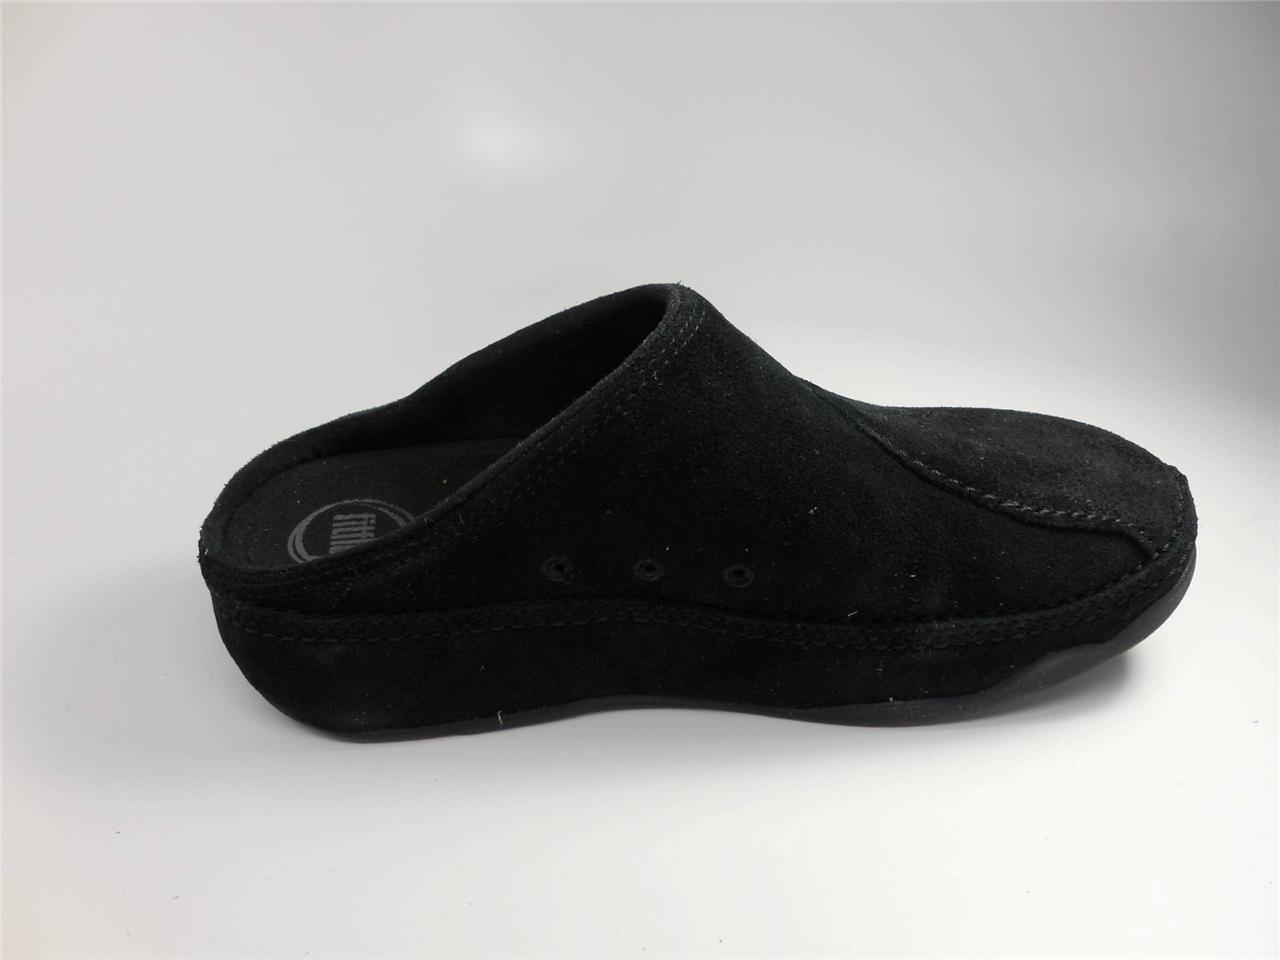 Fitflop Gogh Suede Women Suede Mules Clogs Shoes New Ebay